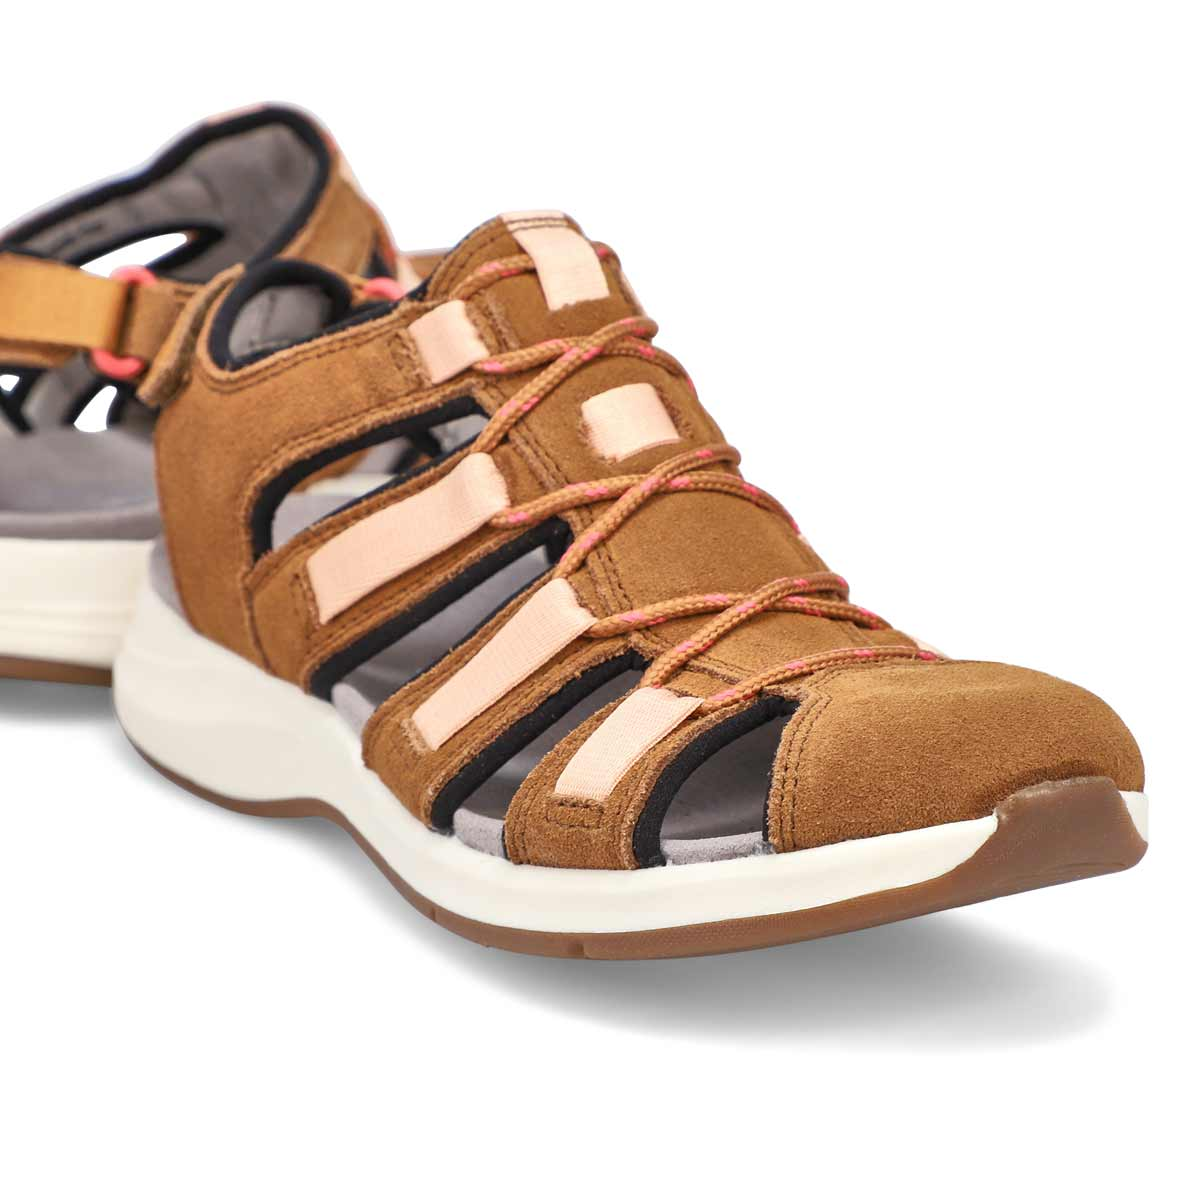 Women's Solan Sail Sandal - Dark Tan